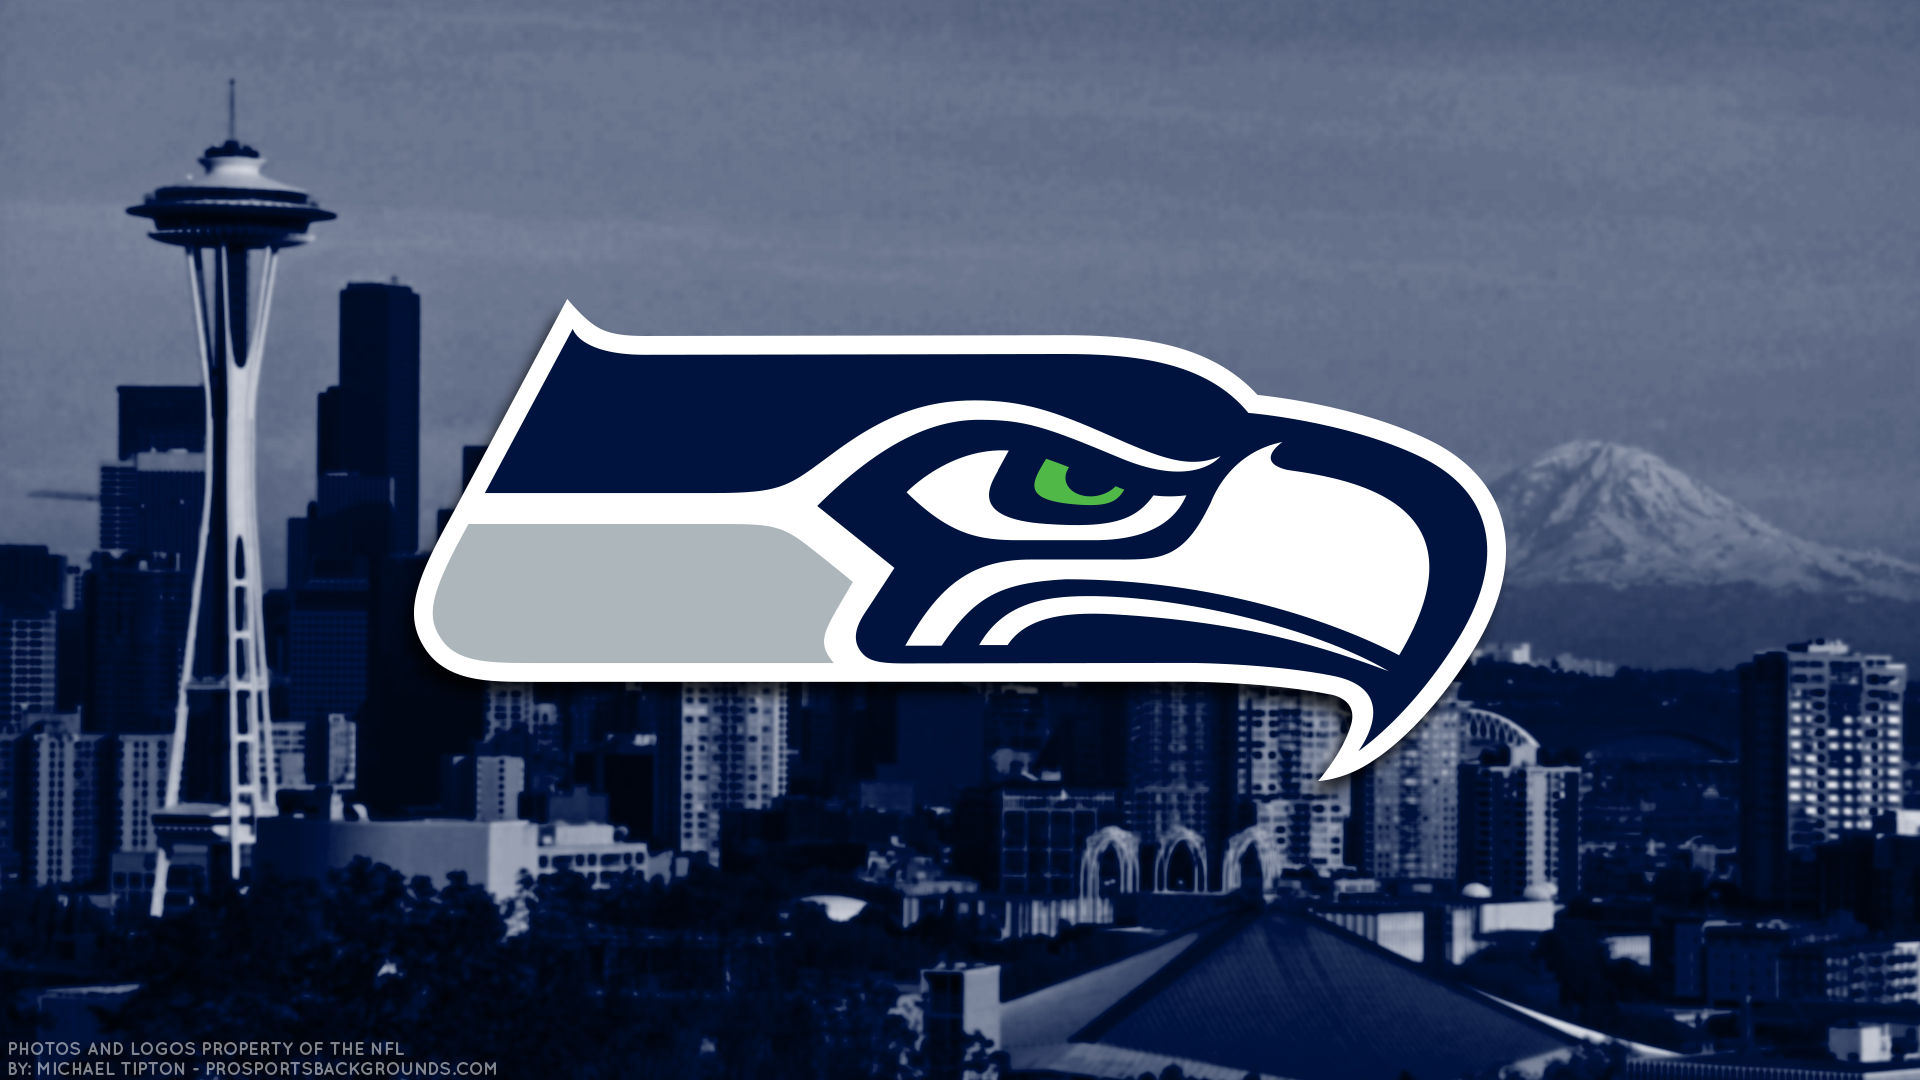 Seattle Seahawks Wallpaper 1920x1080